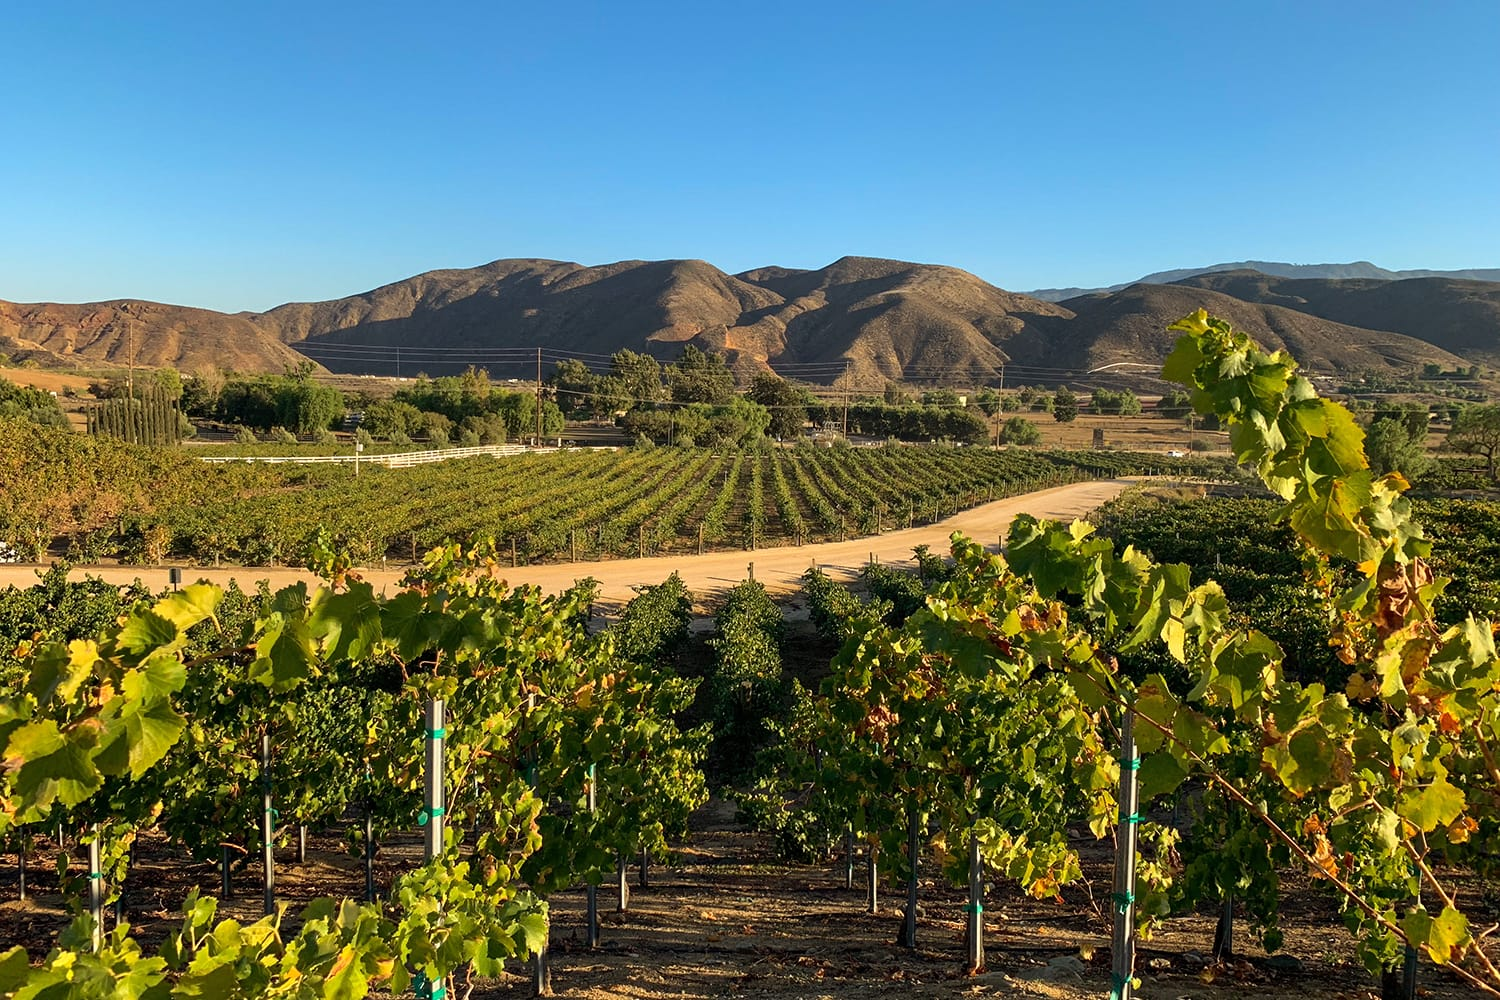 Vineyards at the wine region in Temecula, Southern California, USA